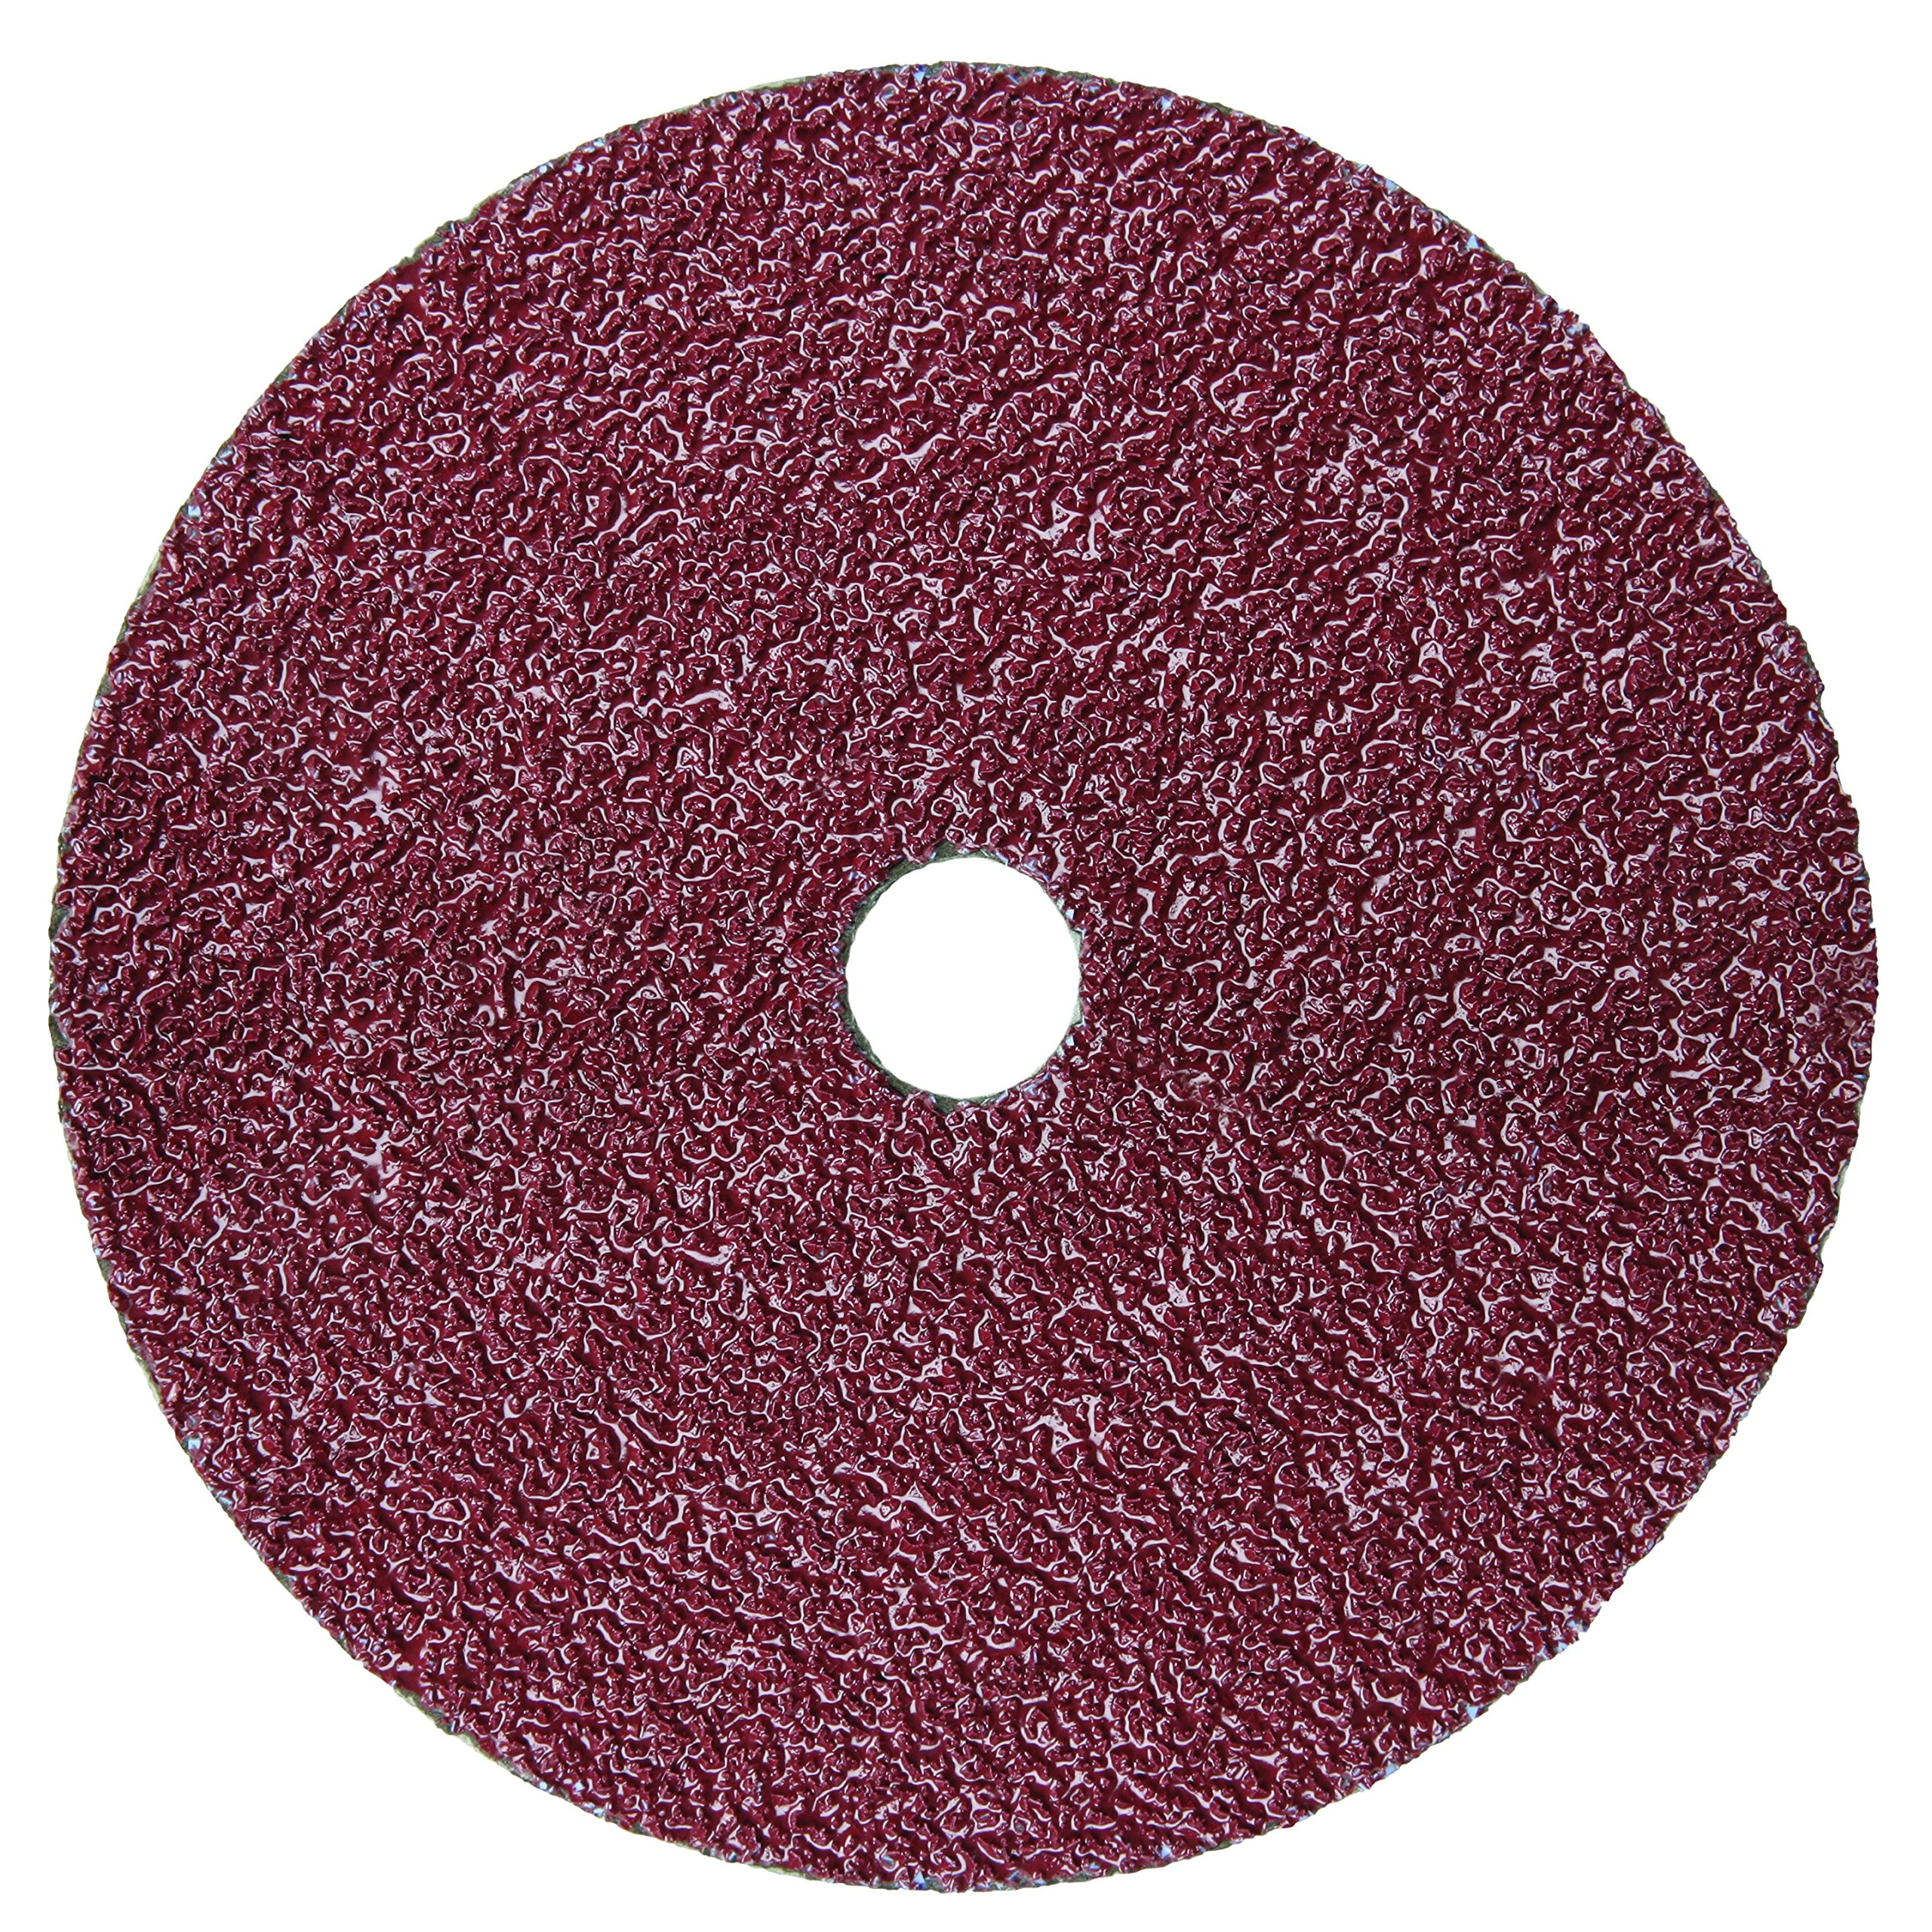 3M ABR-982C-36-4.5x0.875(25) Cubitron II Fibre Disc, 4-1/2'' x 7/8'', 36+ Grade (Pack of 25) by TapeCase